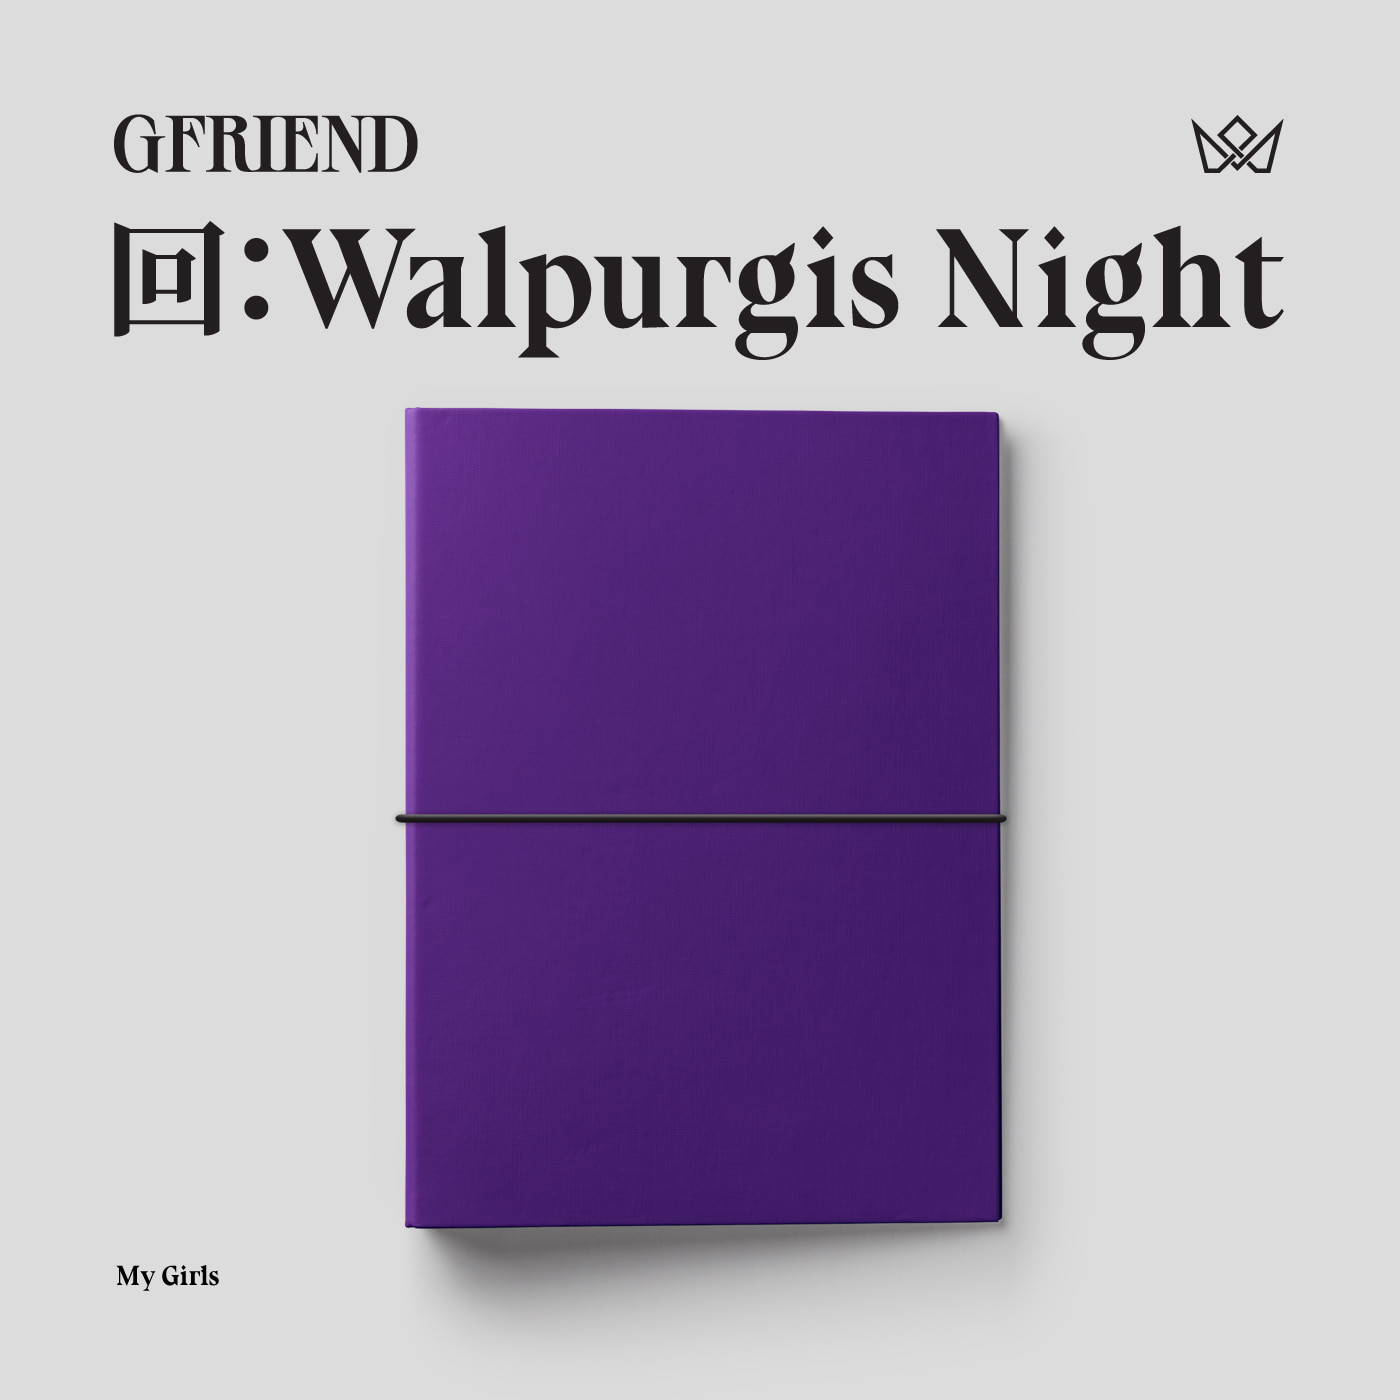 [PRE-ORDER] GFRIEND - Album [回:Walpurgis Night] (My Girls Ver.)케이팝스토어(kpop store)